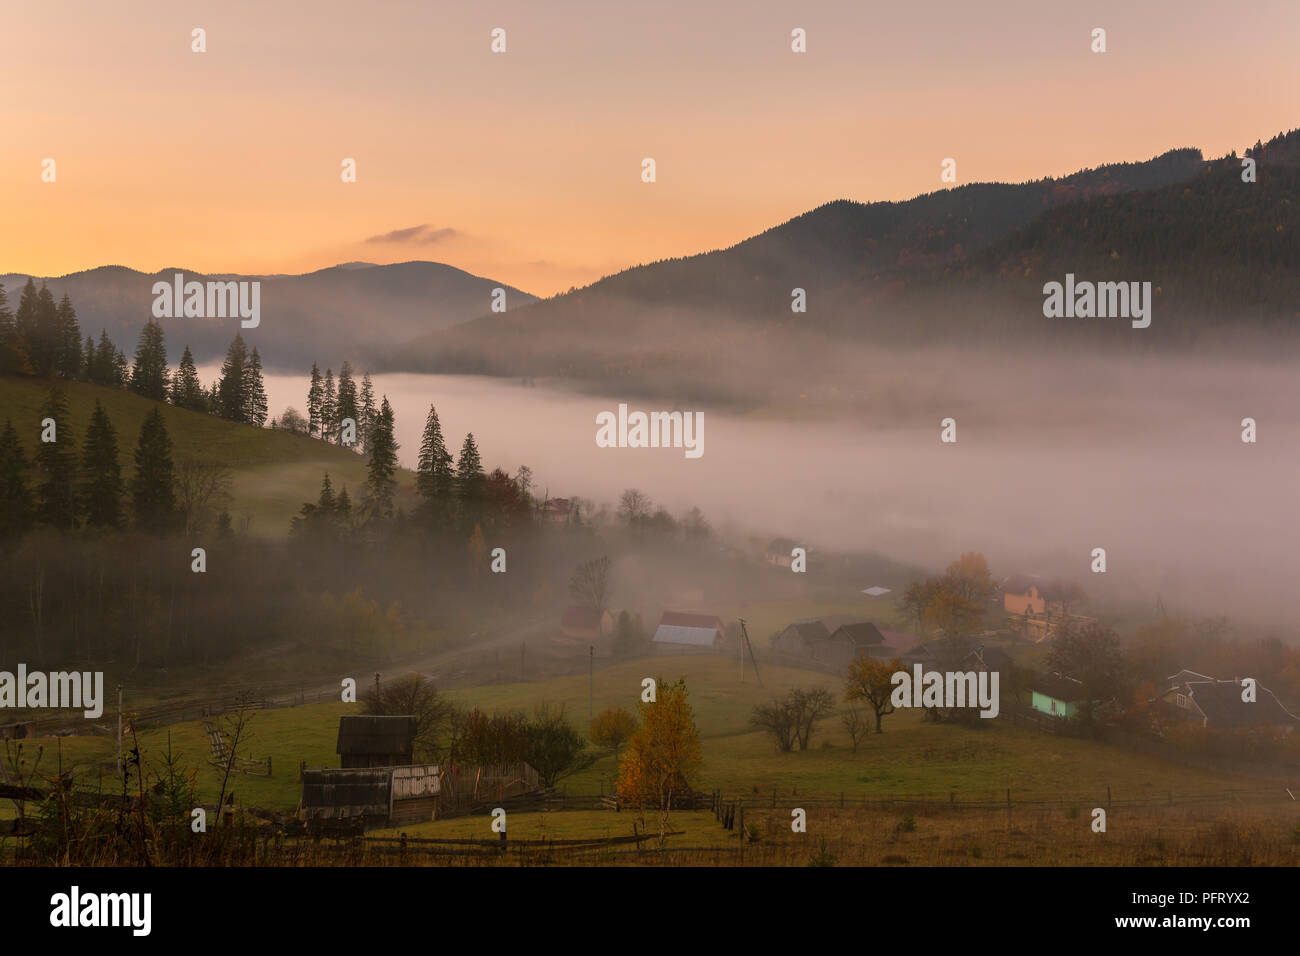 c9b36cbe7 Colorful autumn landscape in the mountain village. Foggy morning in the  Carpathian mountains, Ukraine